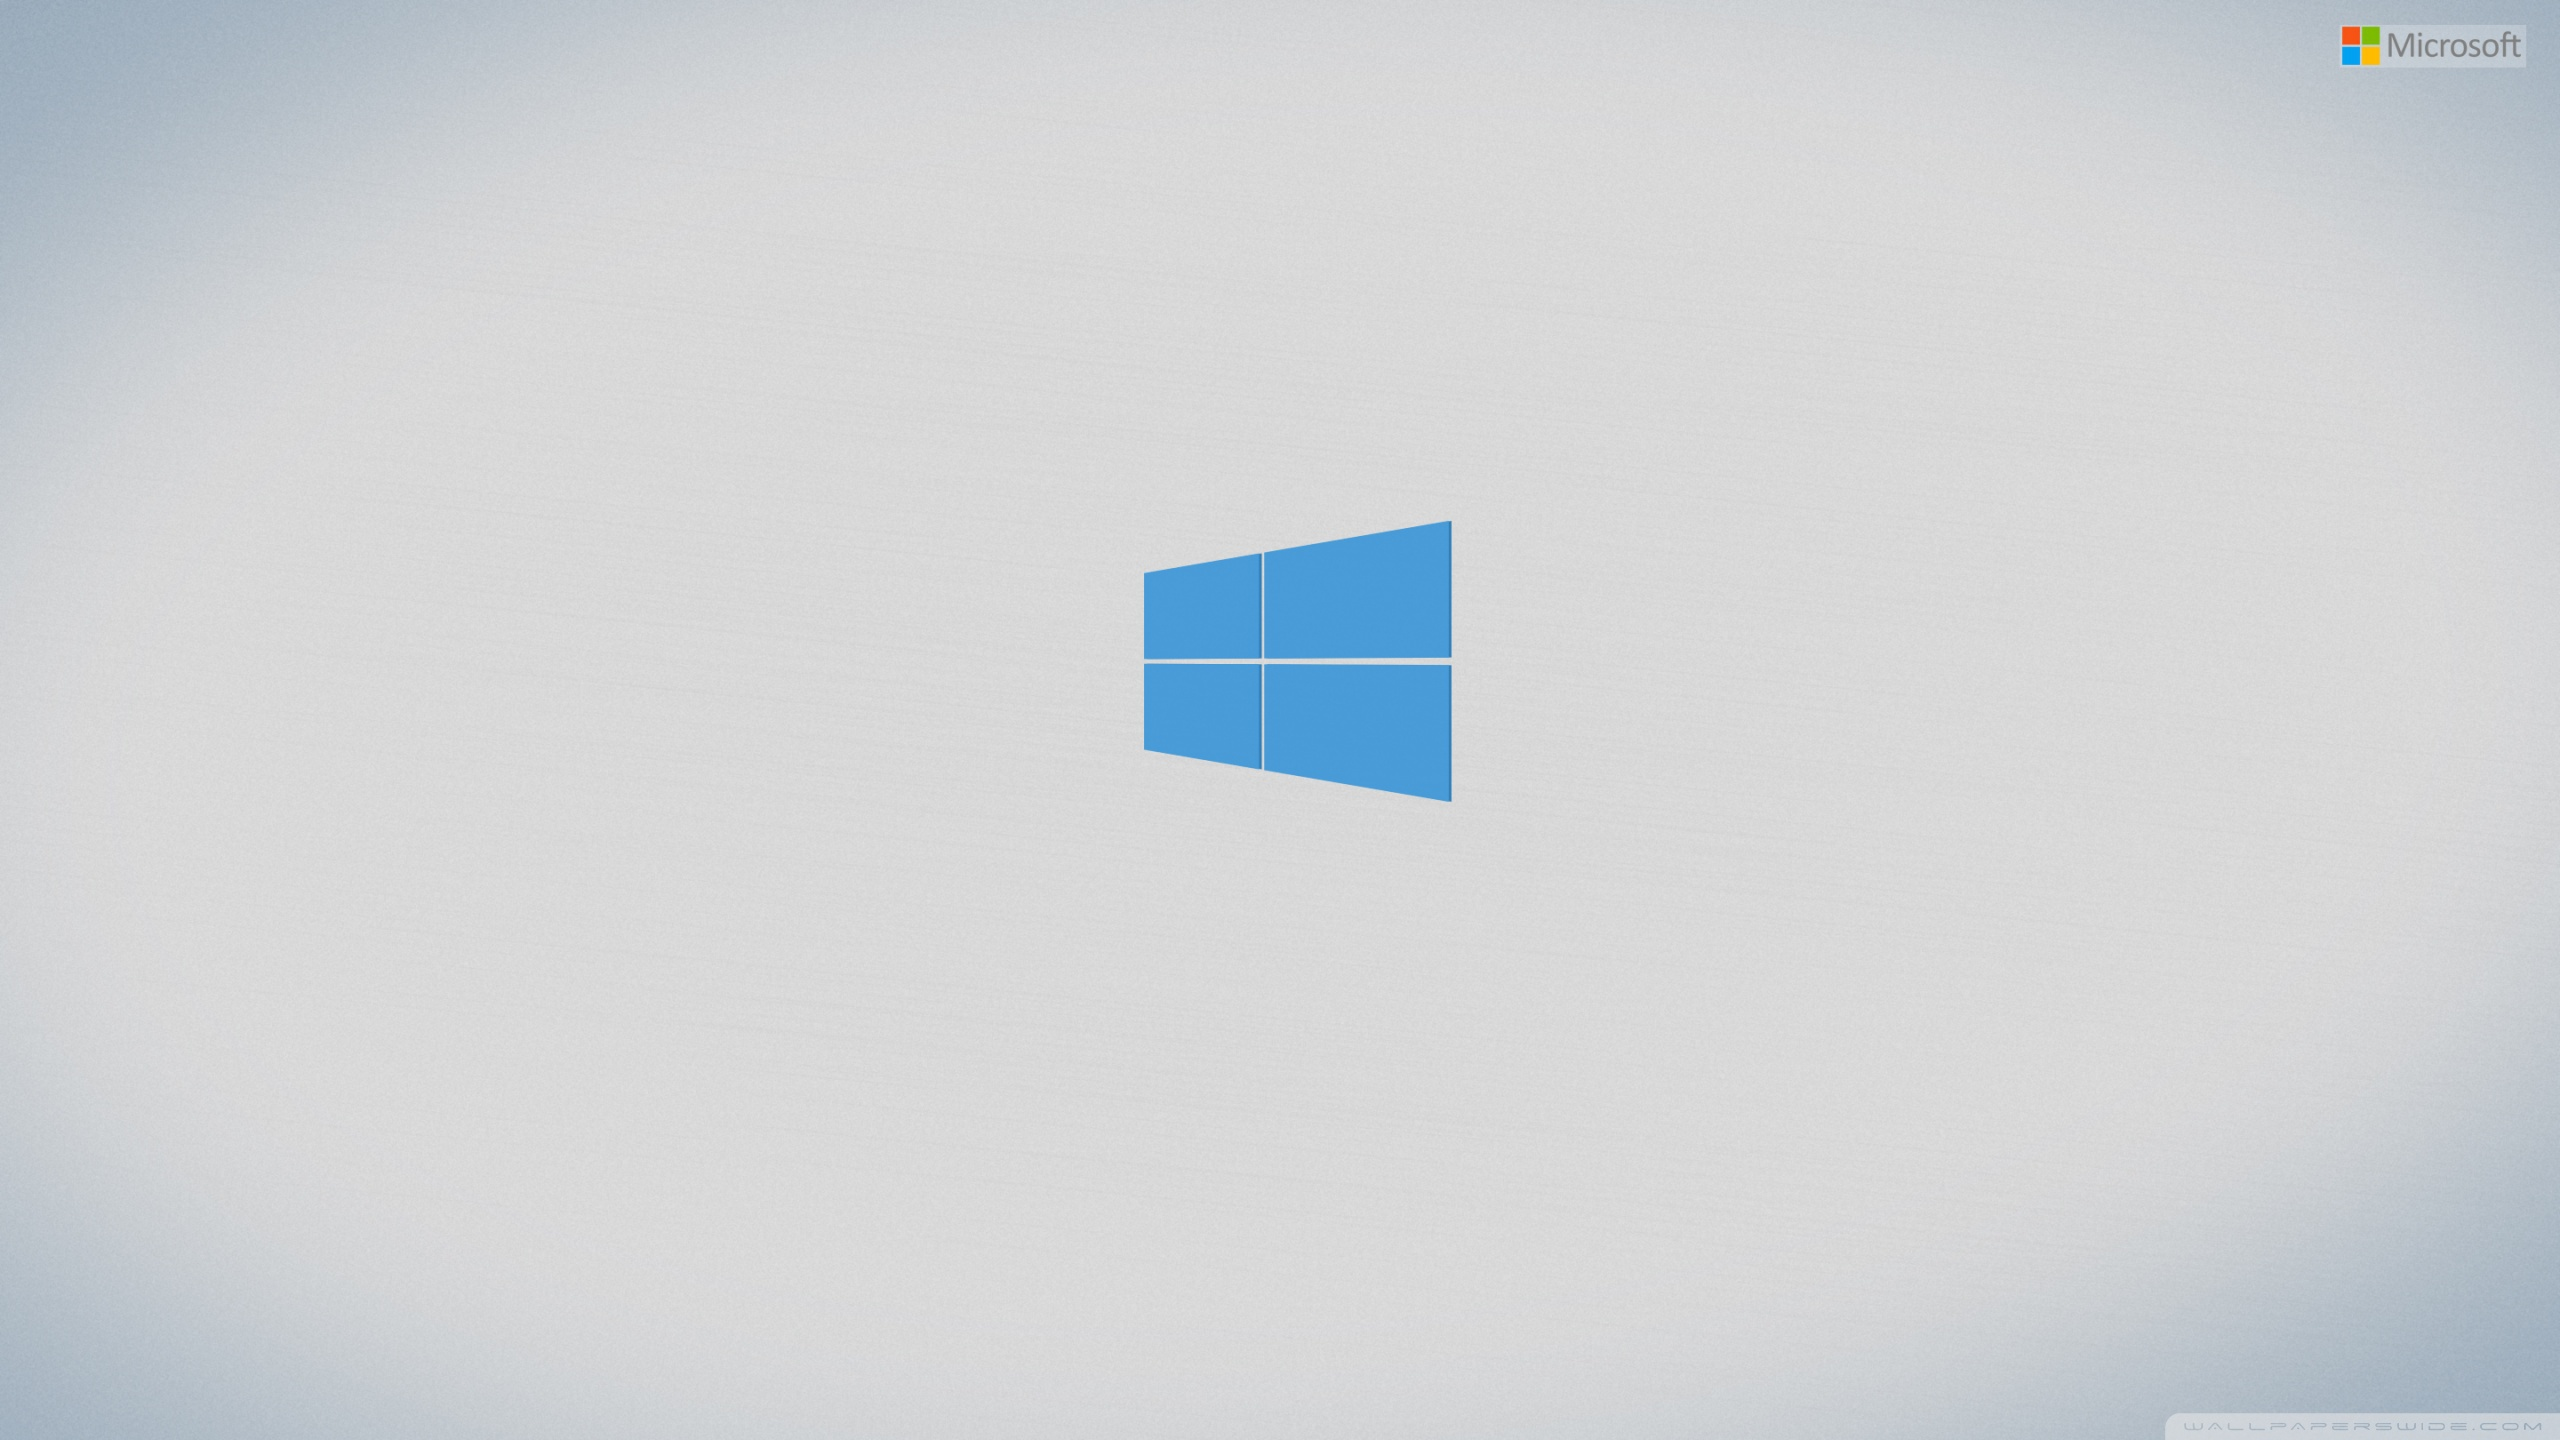 Windows 8 minimal theme blue wallpapers and images   wallpapers 2560x1440